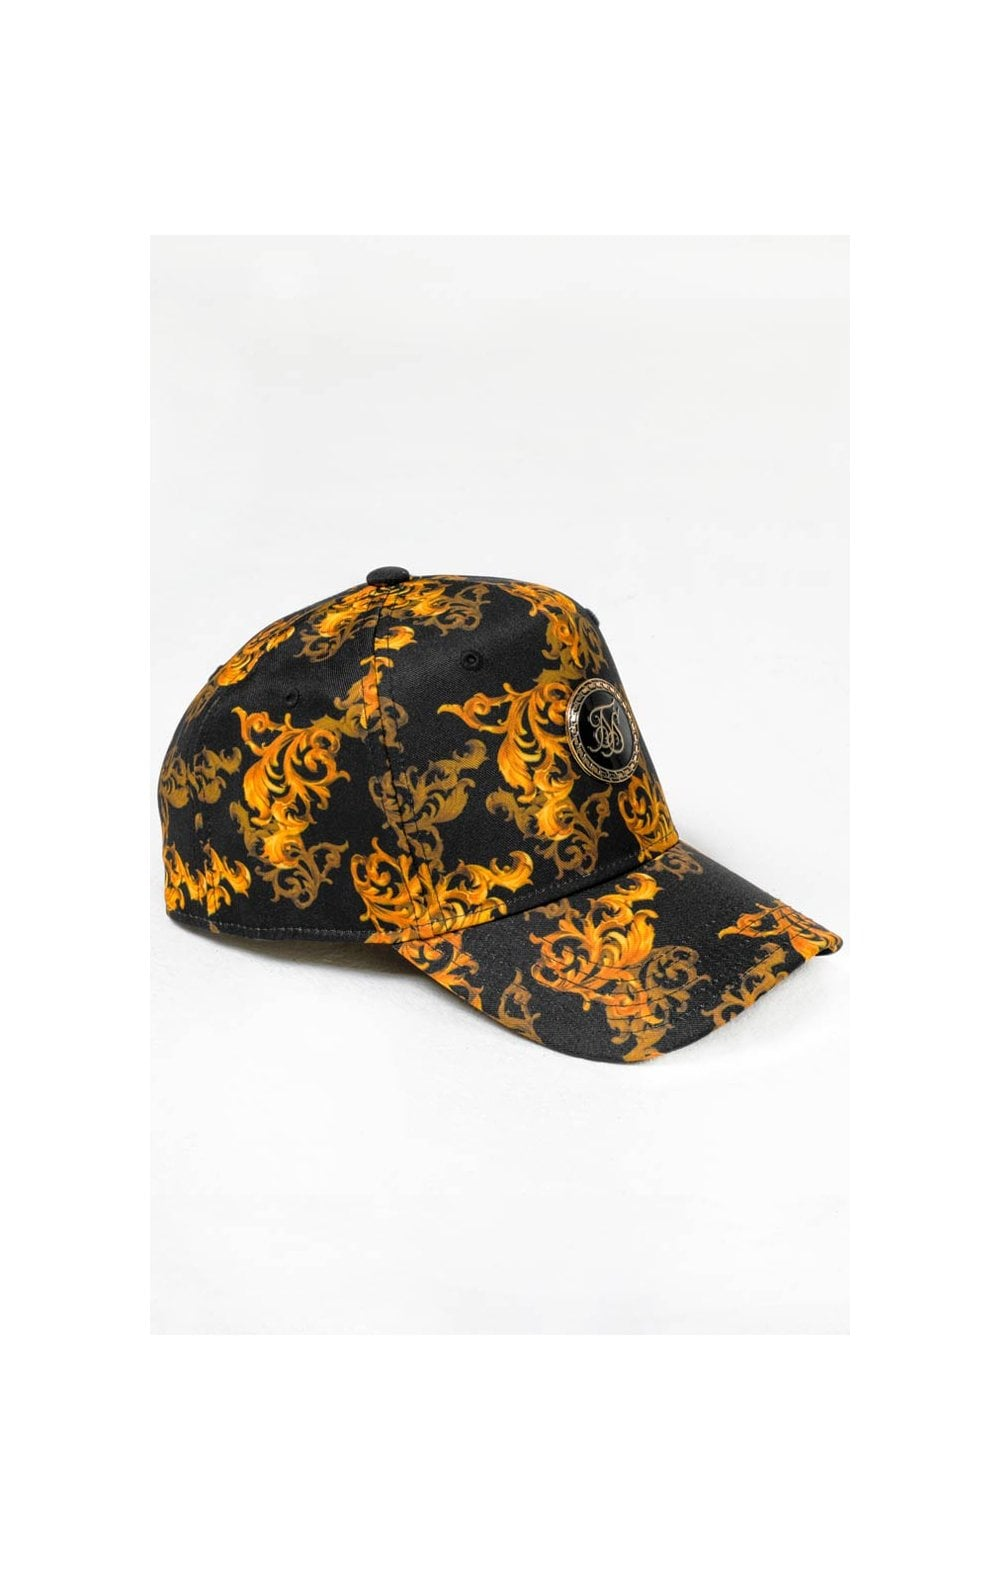 SikSilk x Dani Alves Bent Peak Trucker - Black & Gold